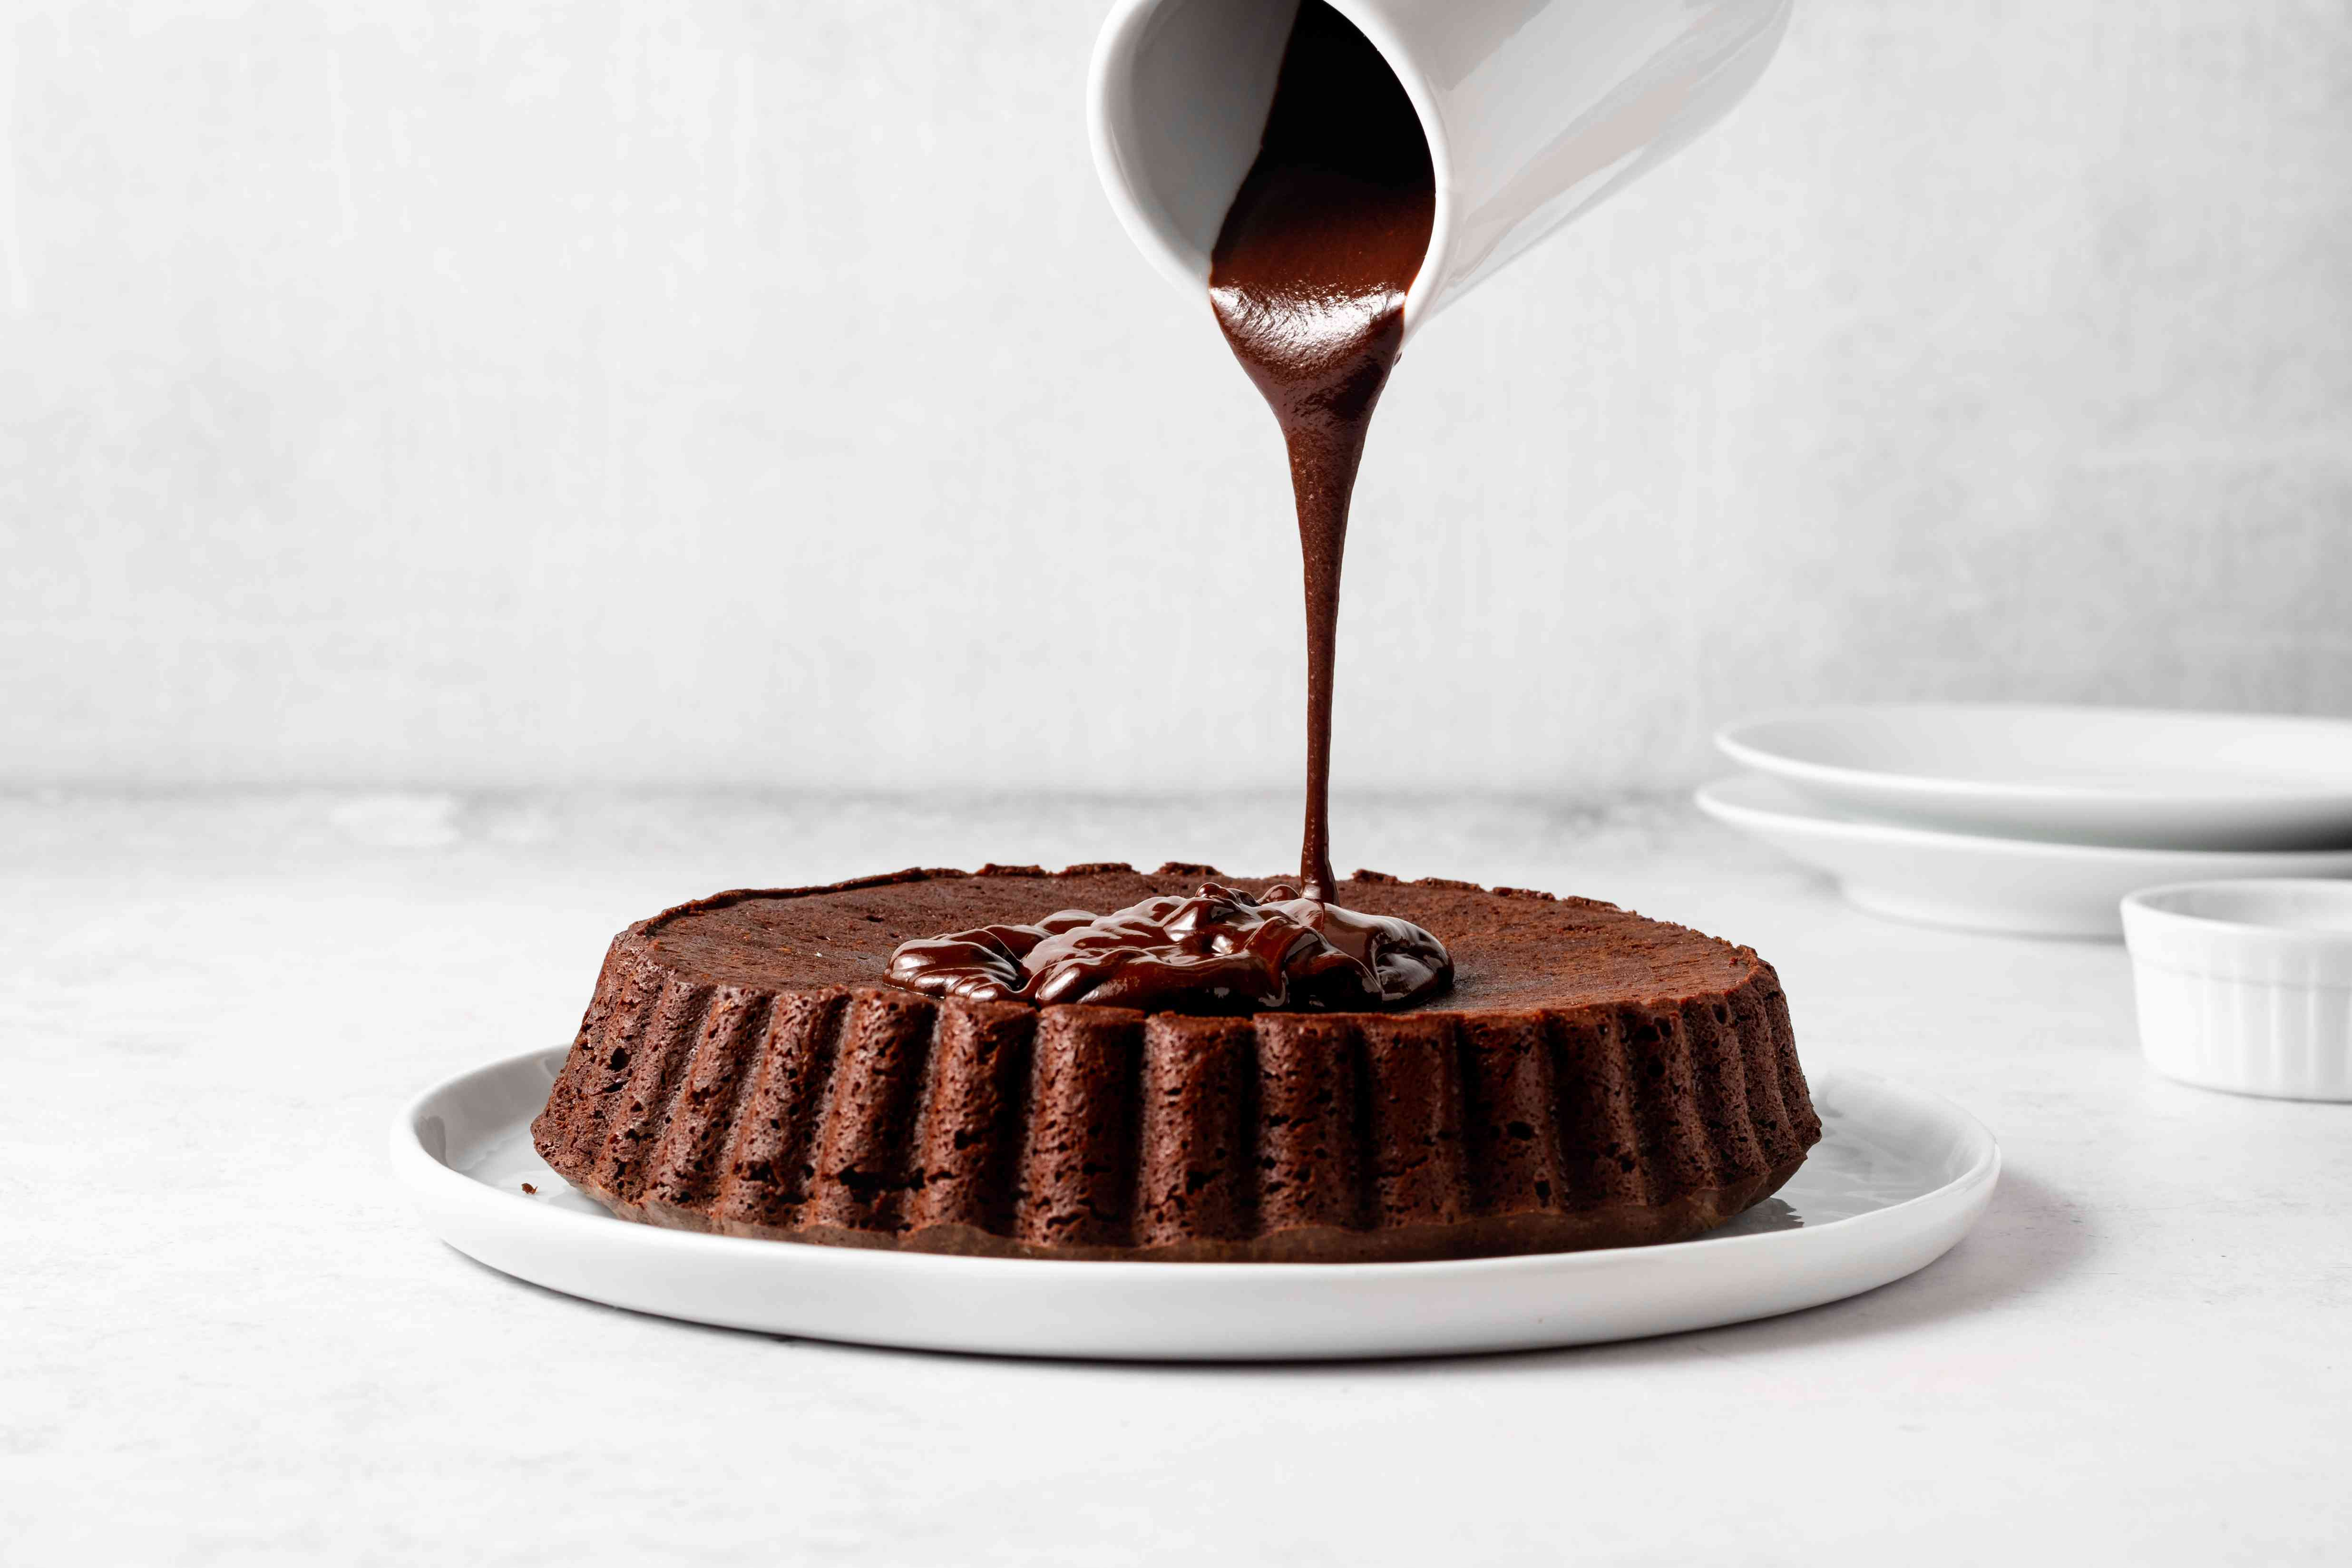 Pour all of the glaze in the middle of the cake